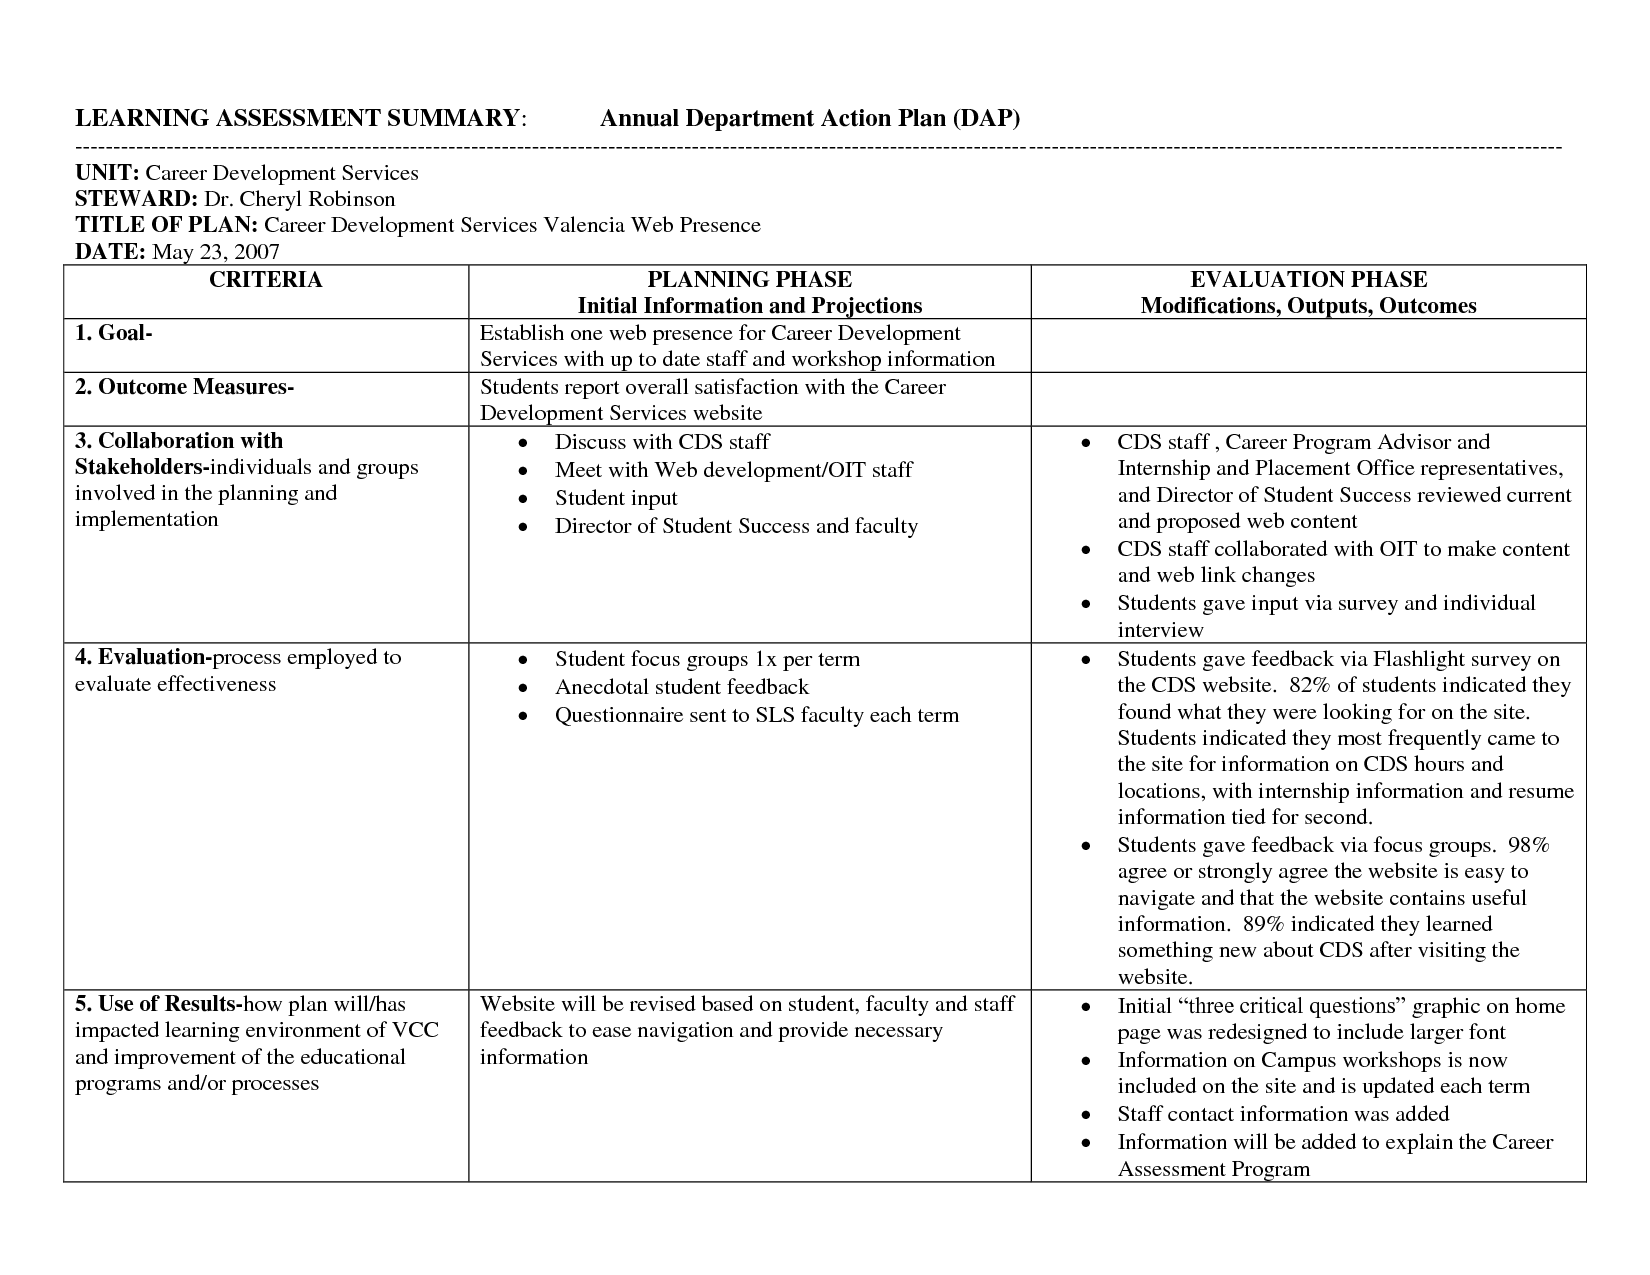 Career Services Department Action Plan Template Assessmnet